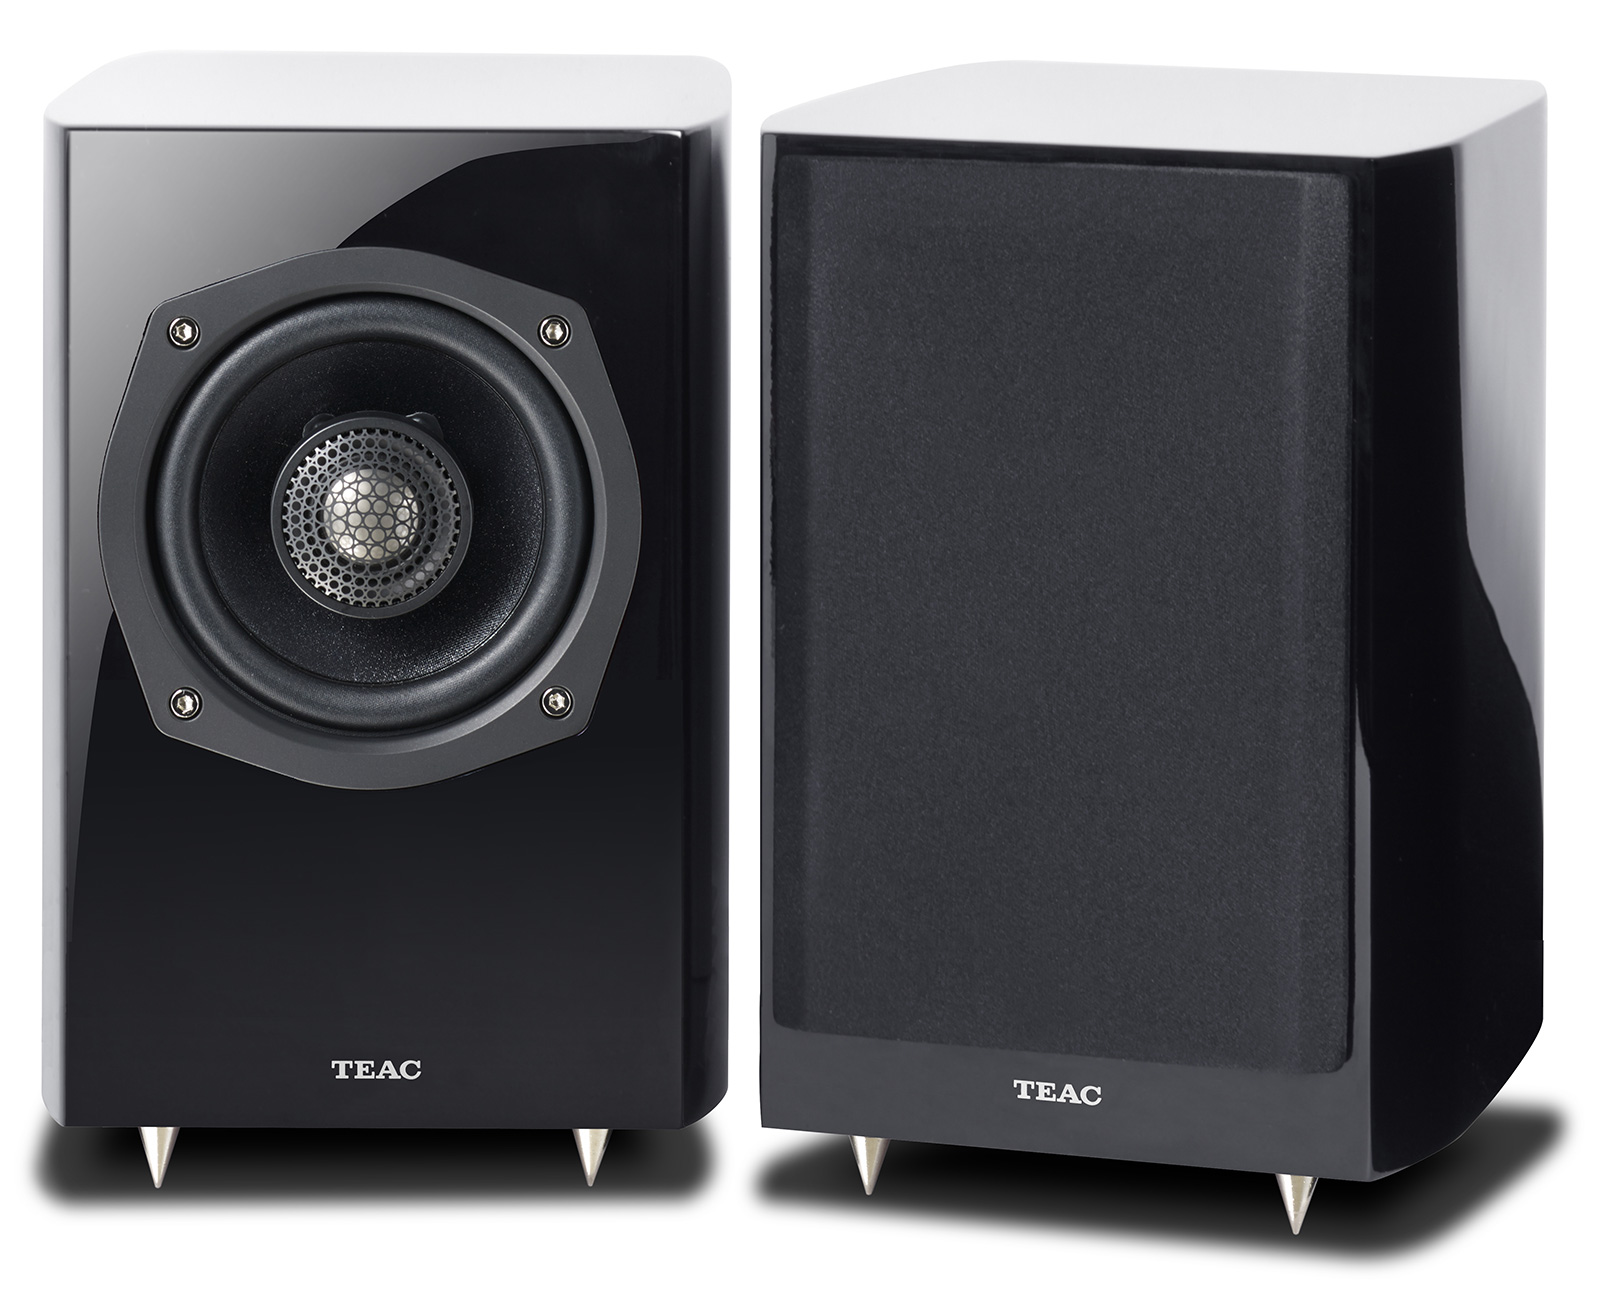 Terrific S 300Hr Features Teac International Website Features Teac Wiring Digital Resources Indicompassionincorg